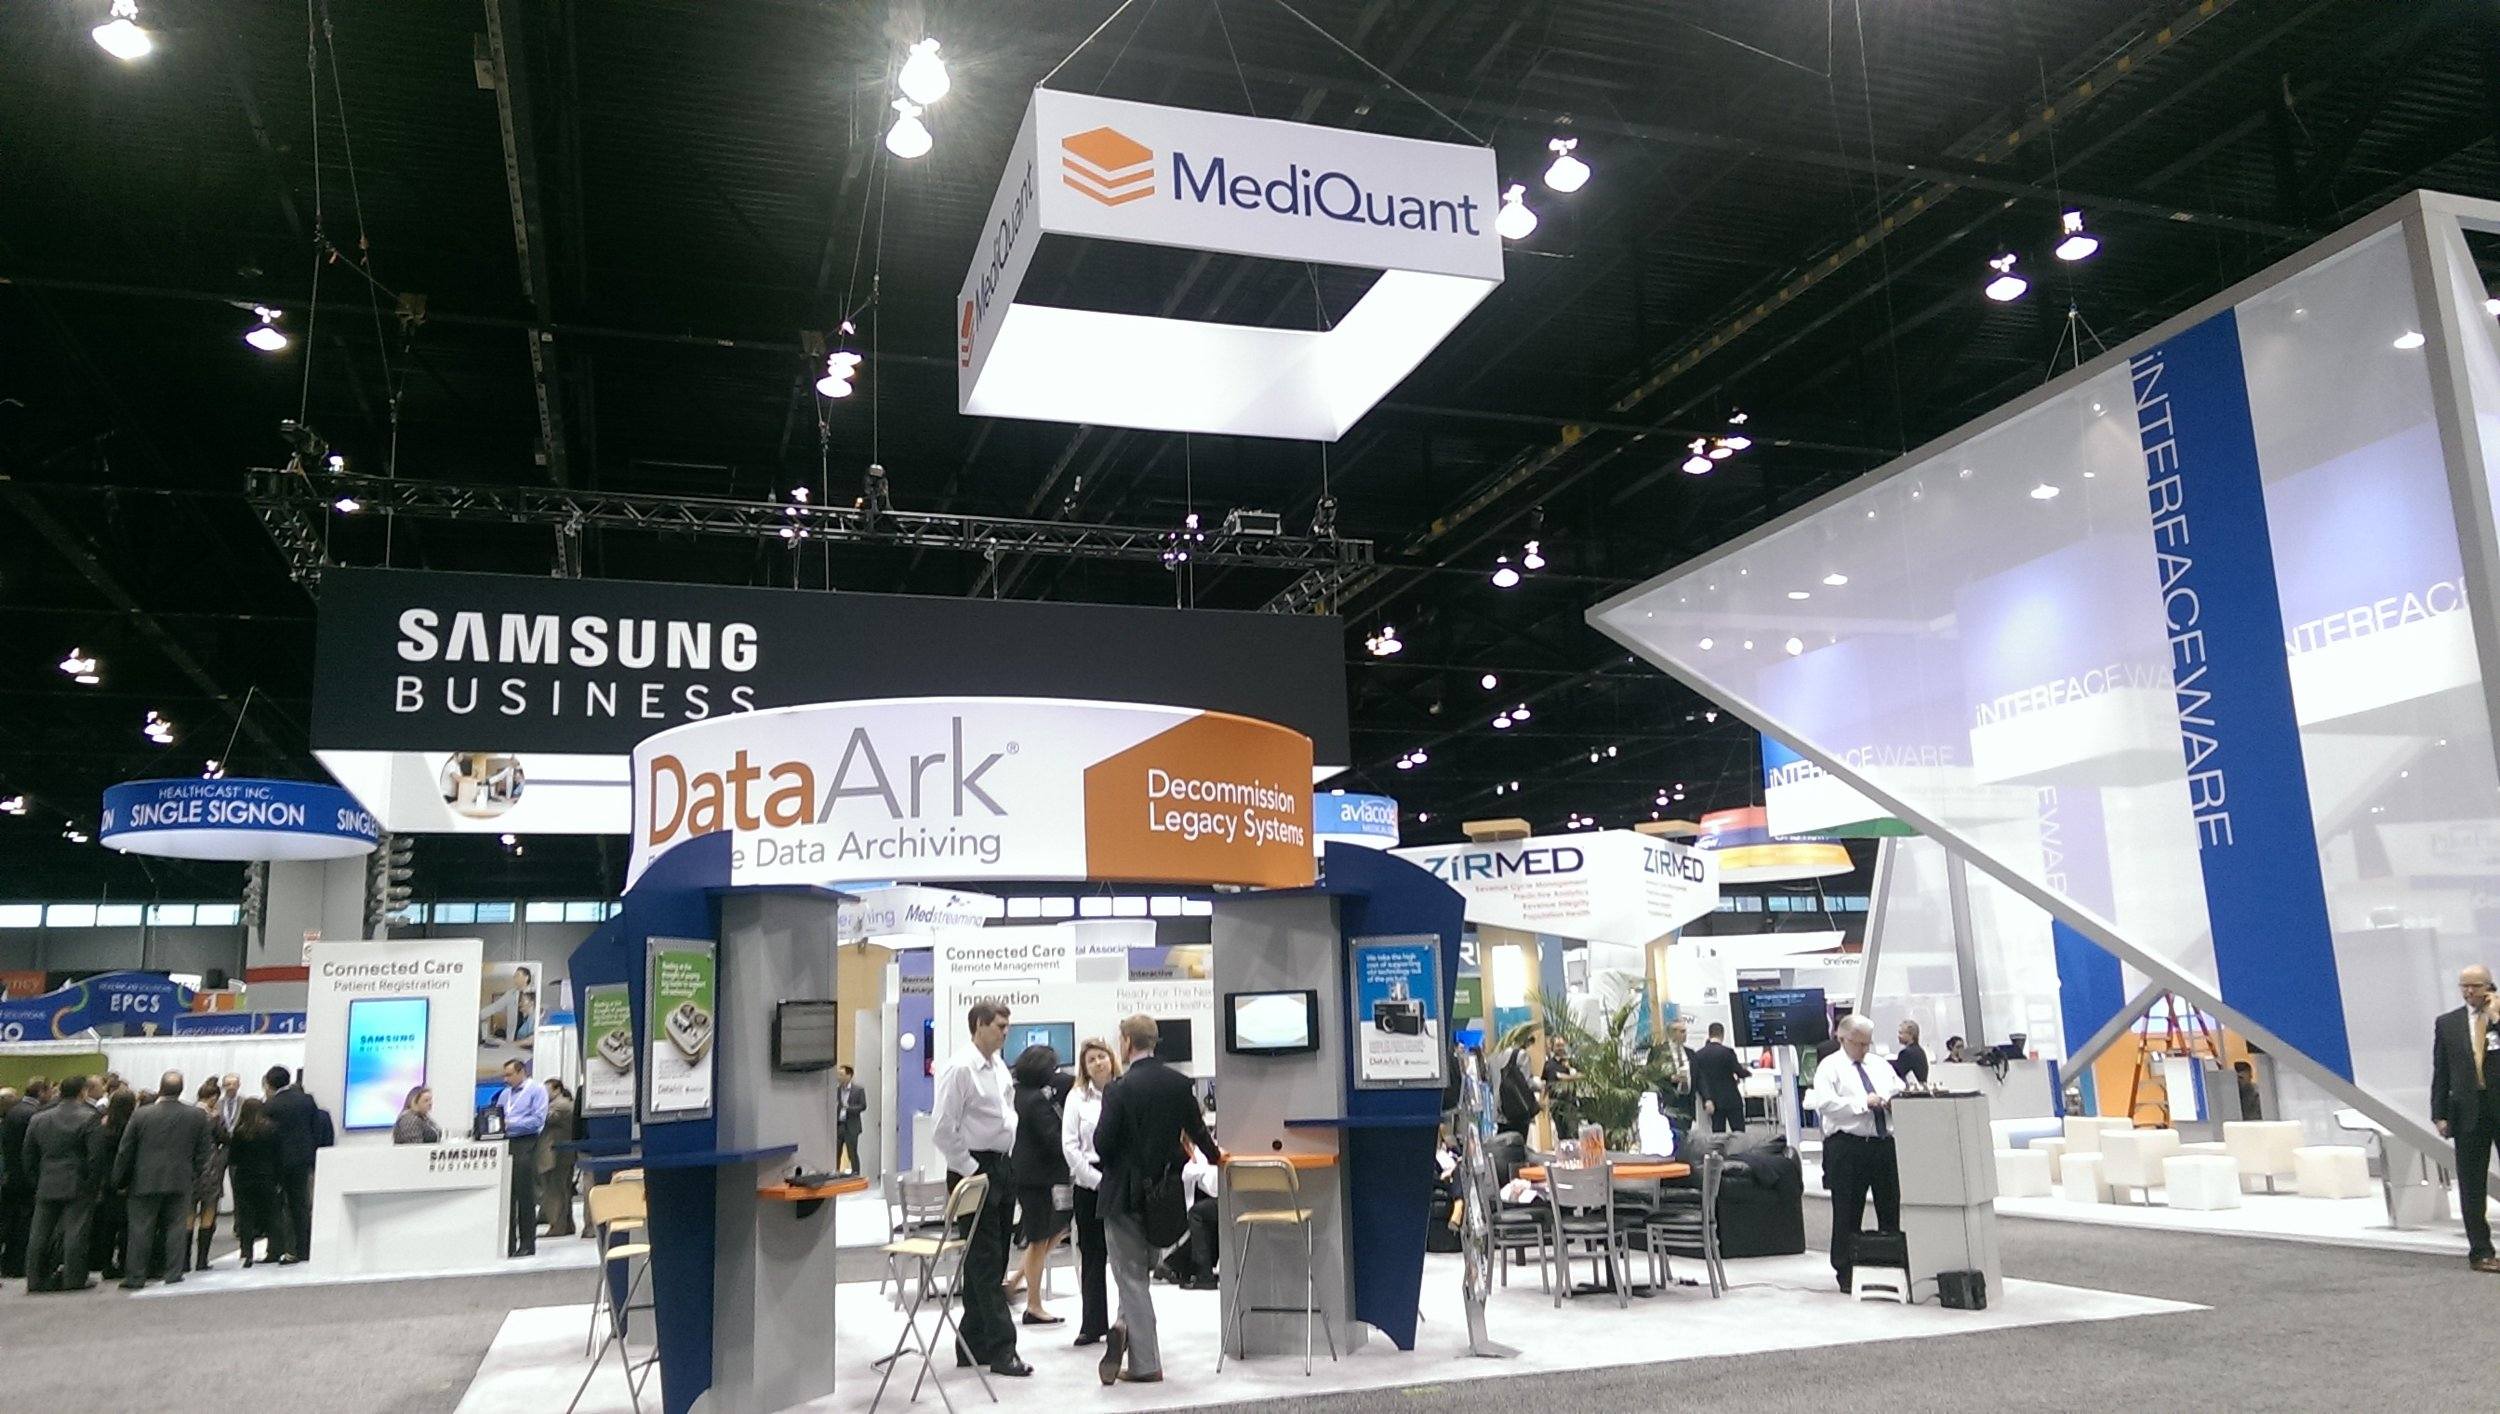 MediQuant at HIMSS